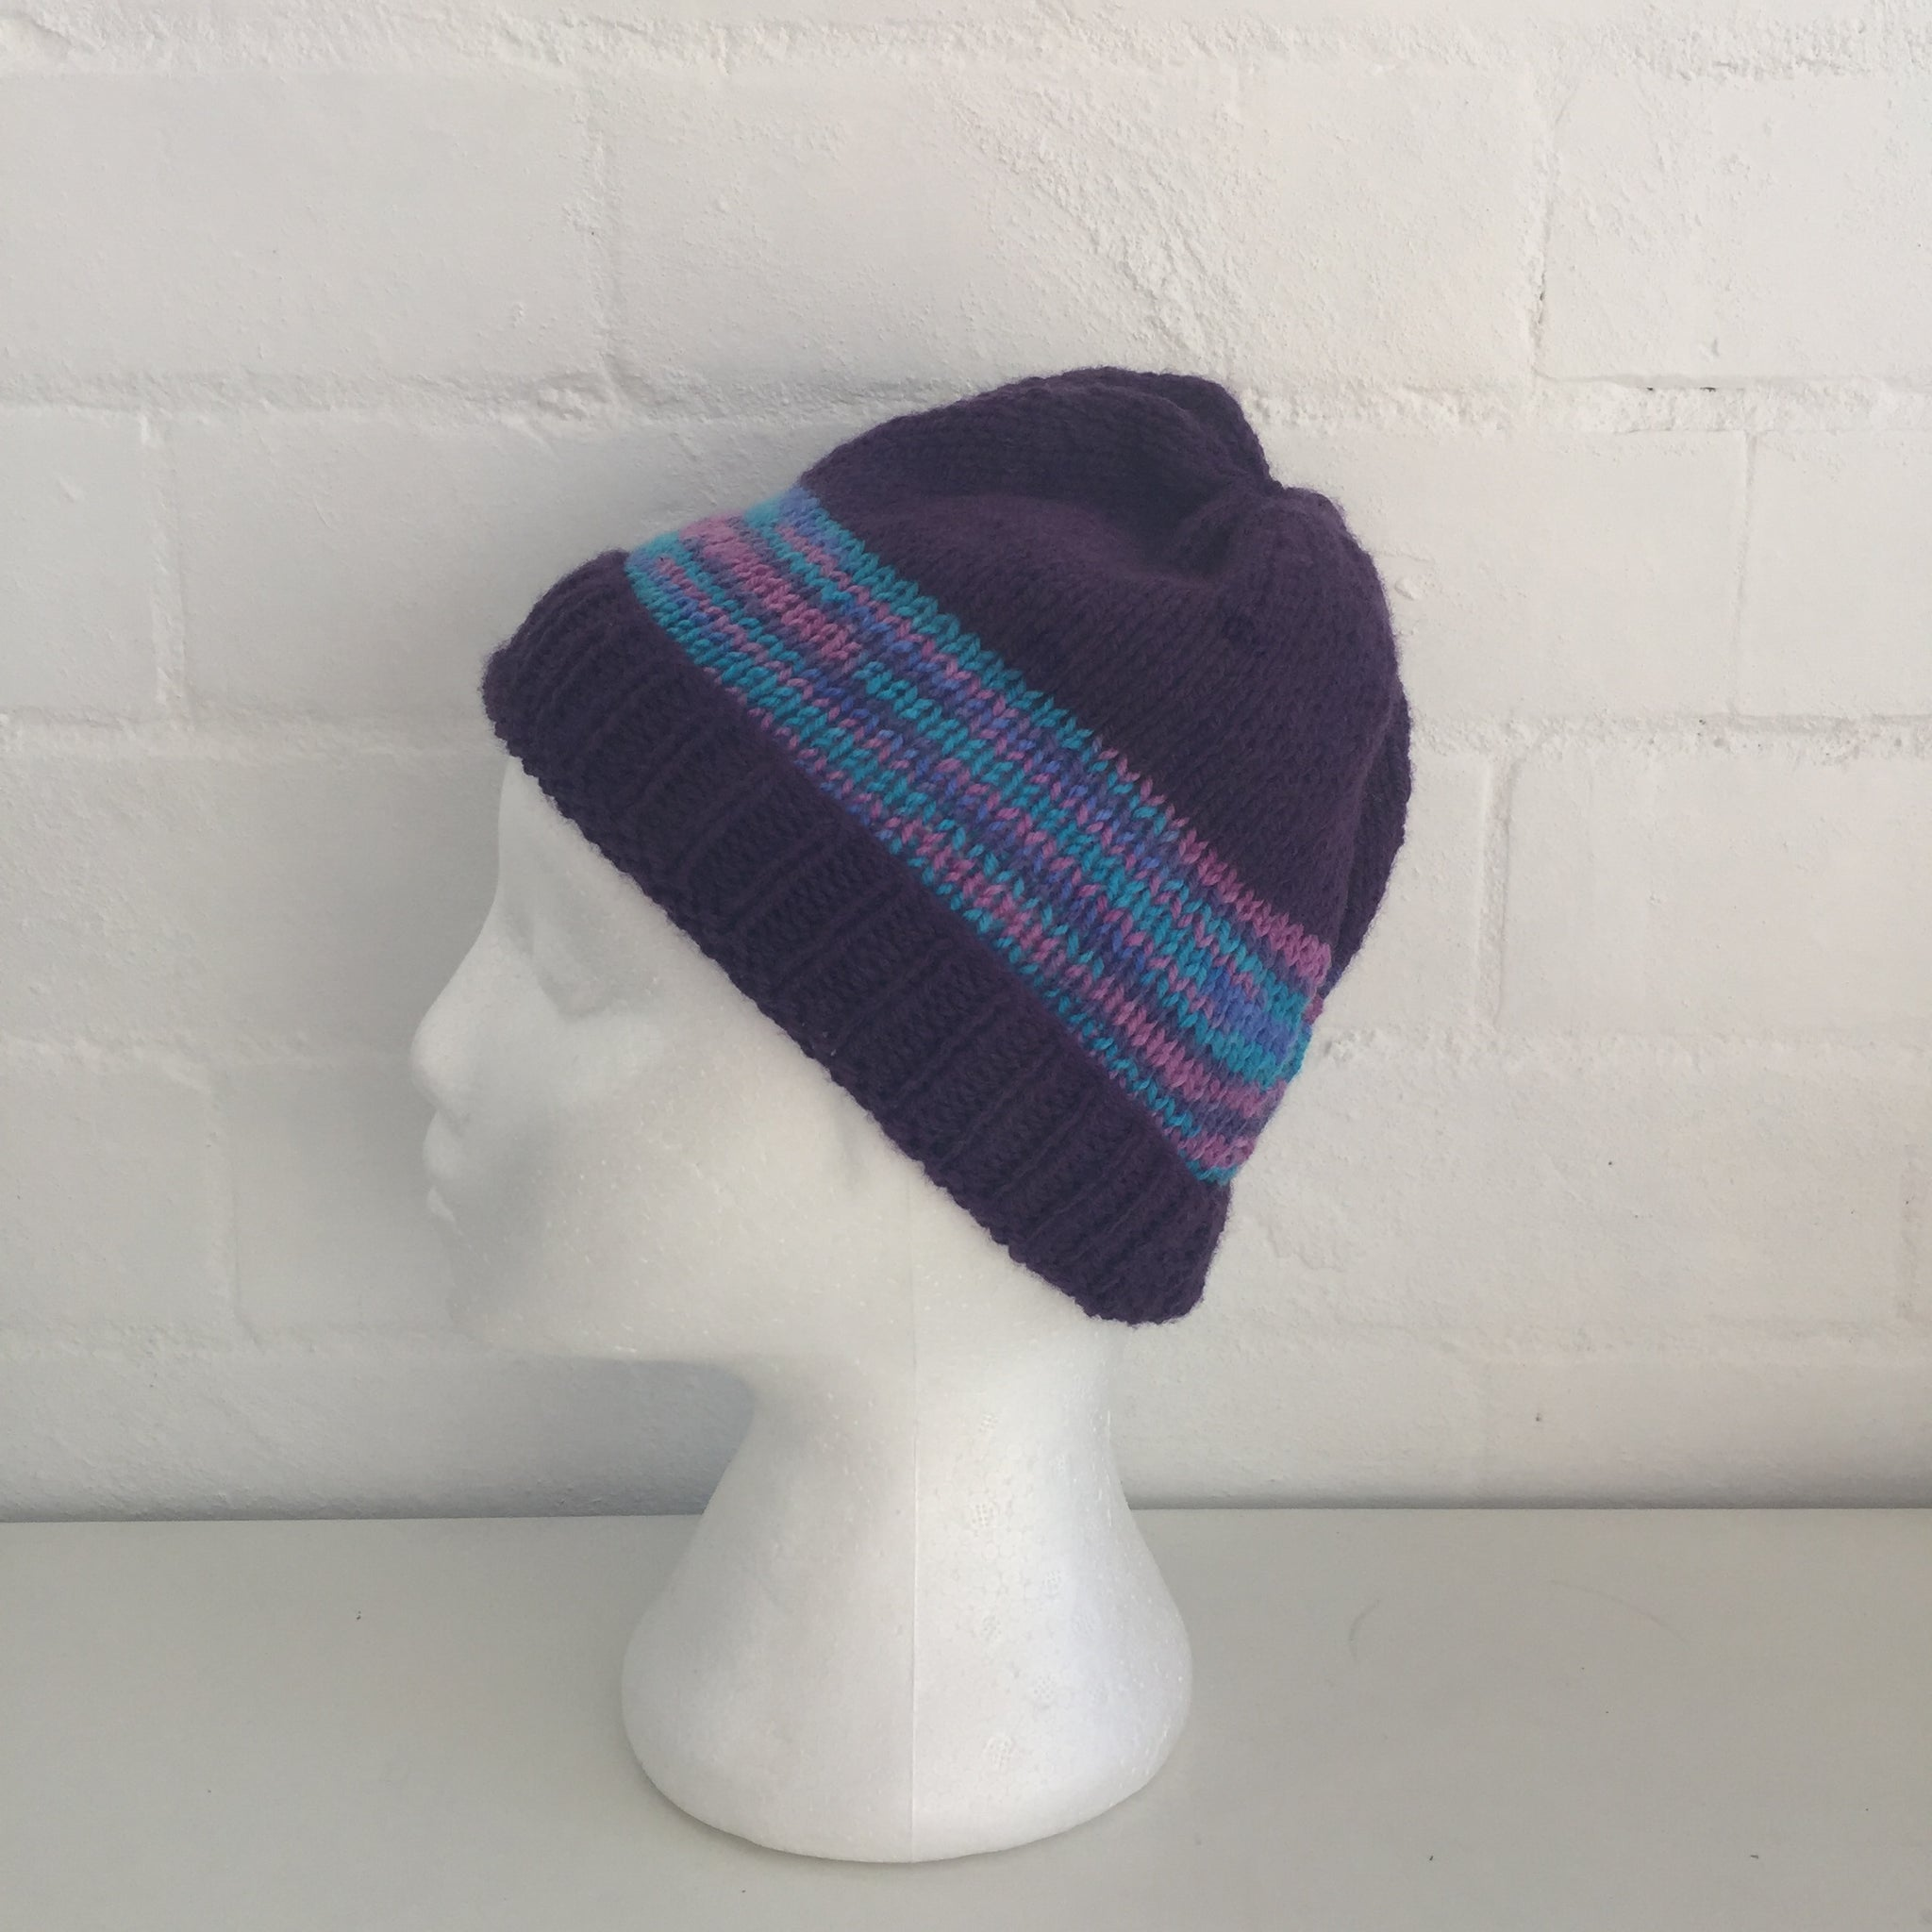 HANDMADE Purple Stripes Market Footy Knitted BEANIE Winter ADORABLE Unused